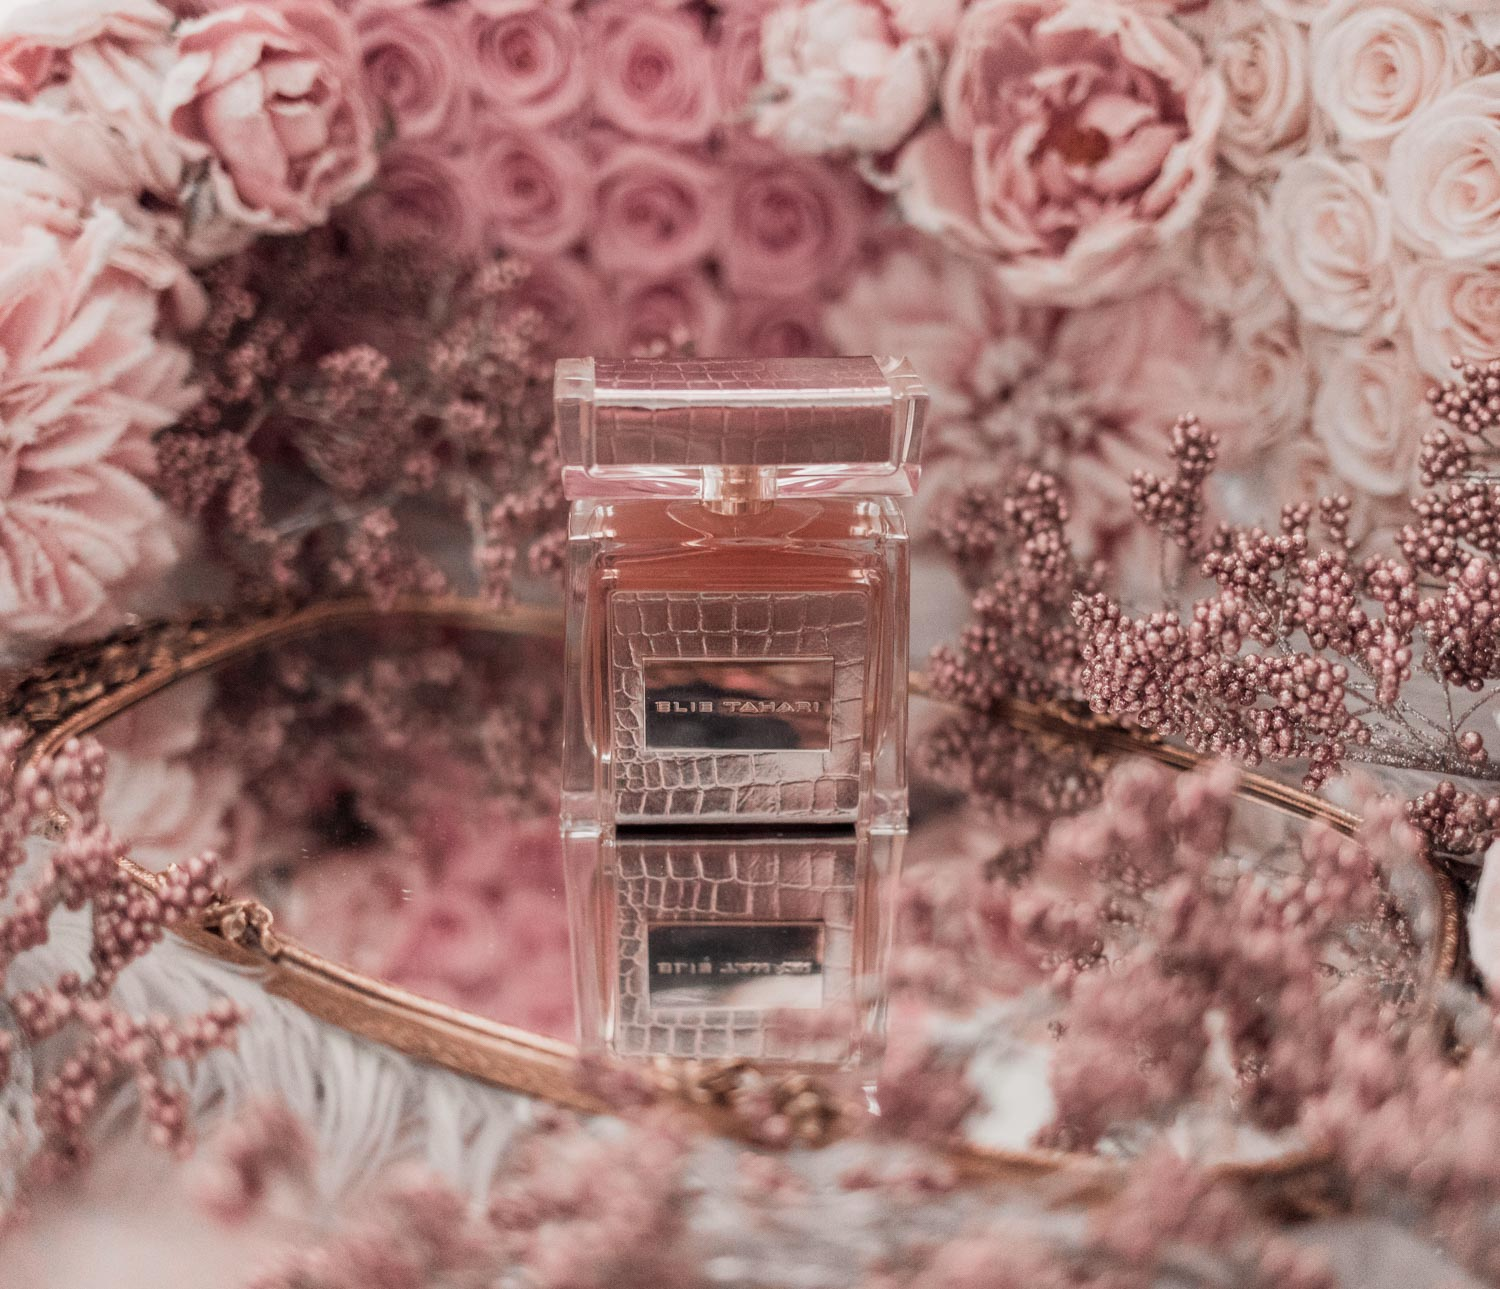 Feminine fashion blogger Elizabeth Hugen of Lizzie in Lace shares the best feminine perfumes and her girly fragrance collection including Elie Tahari perfume